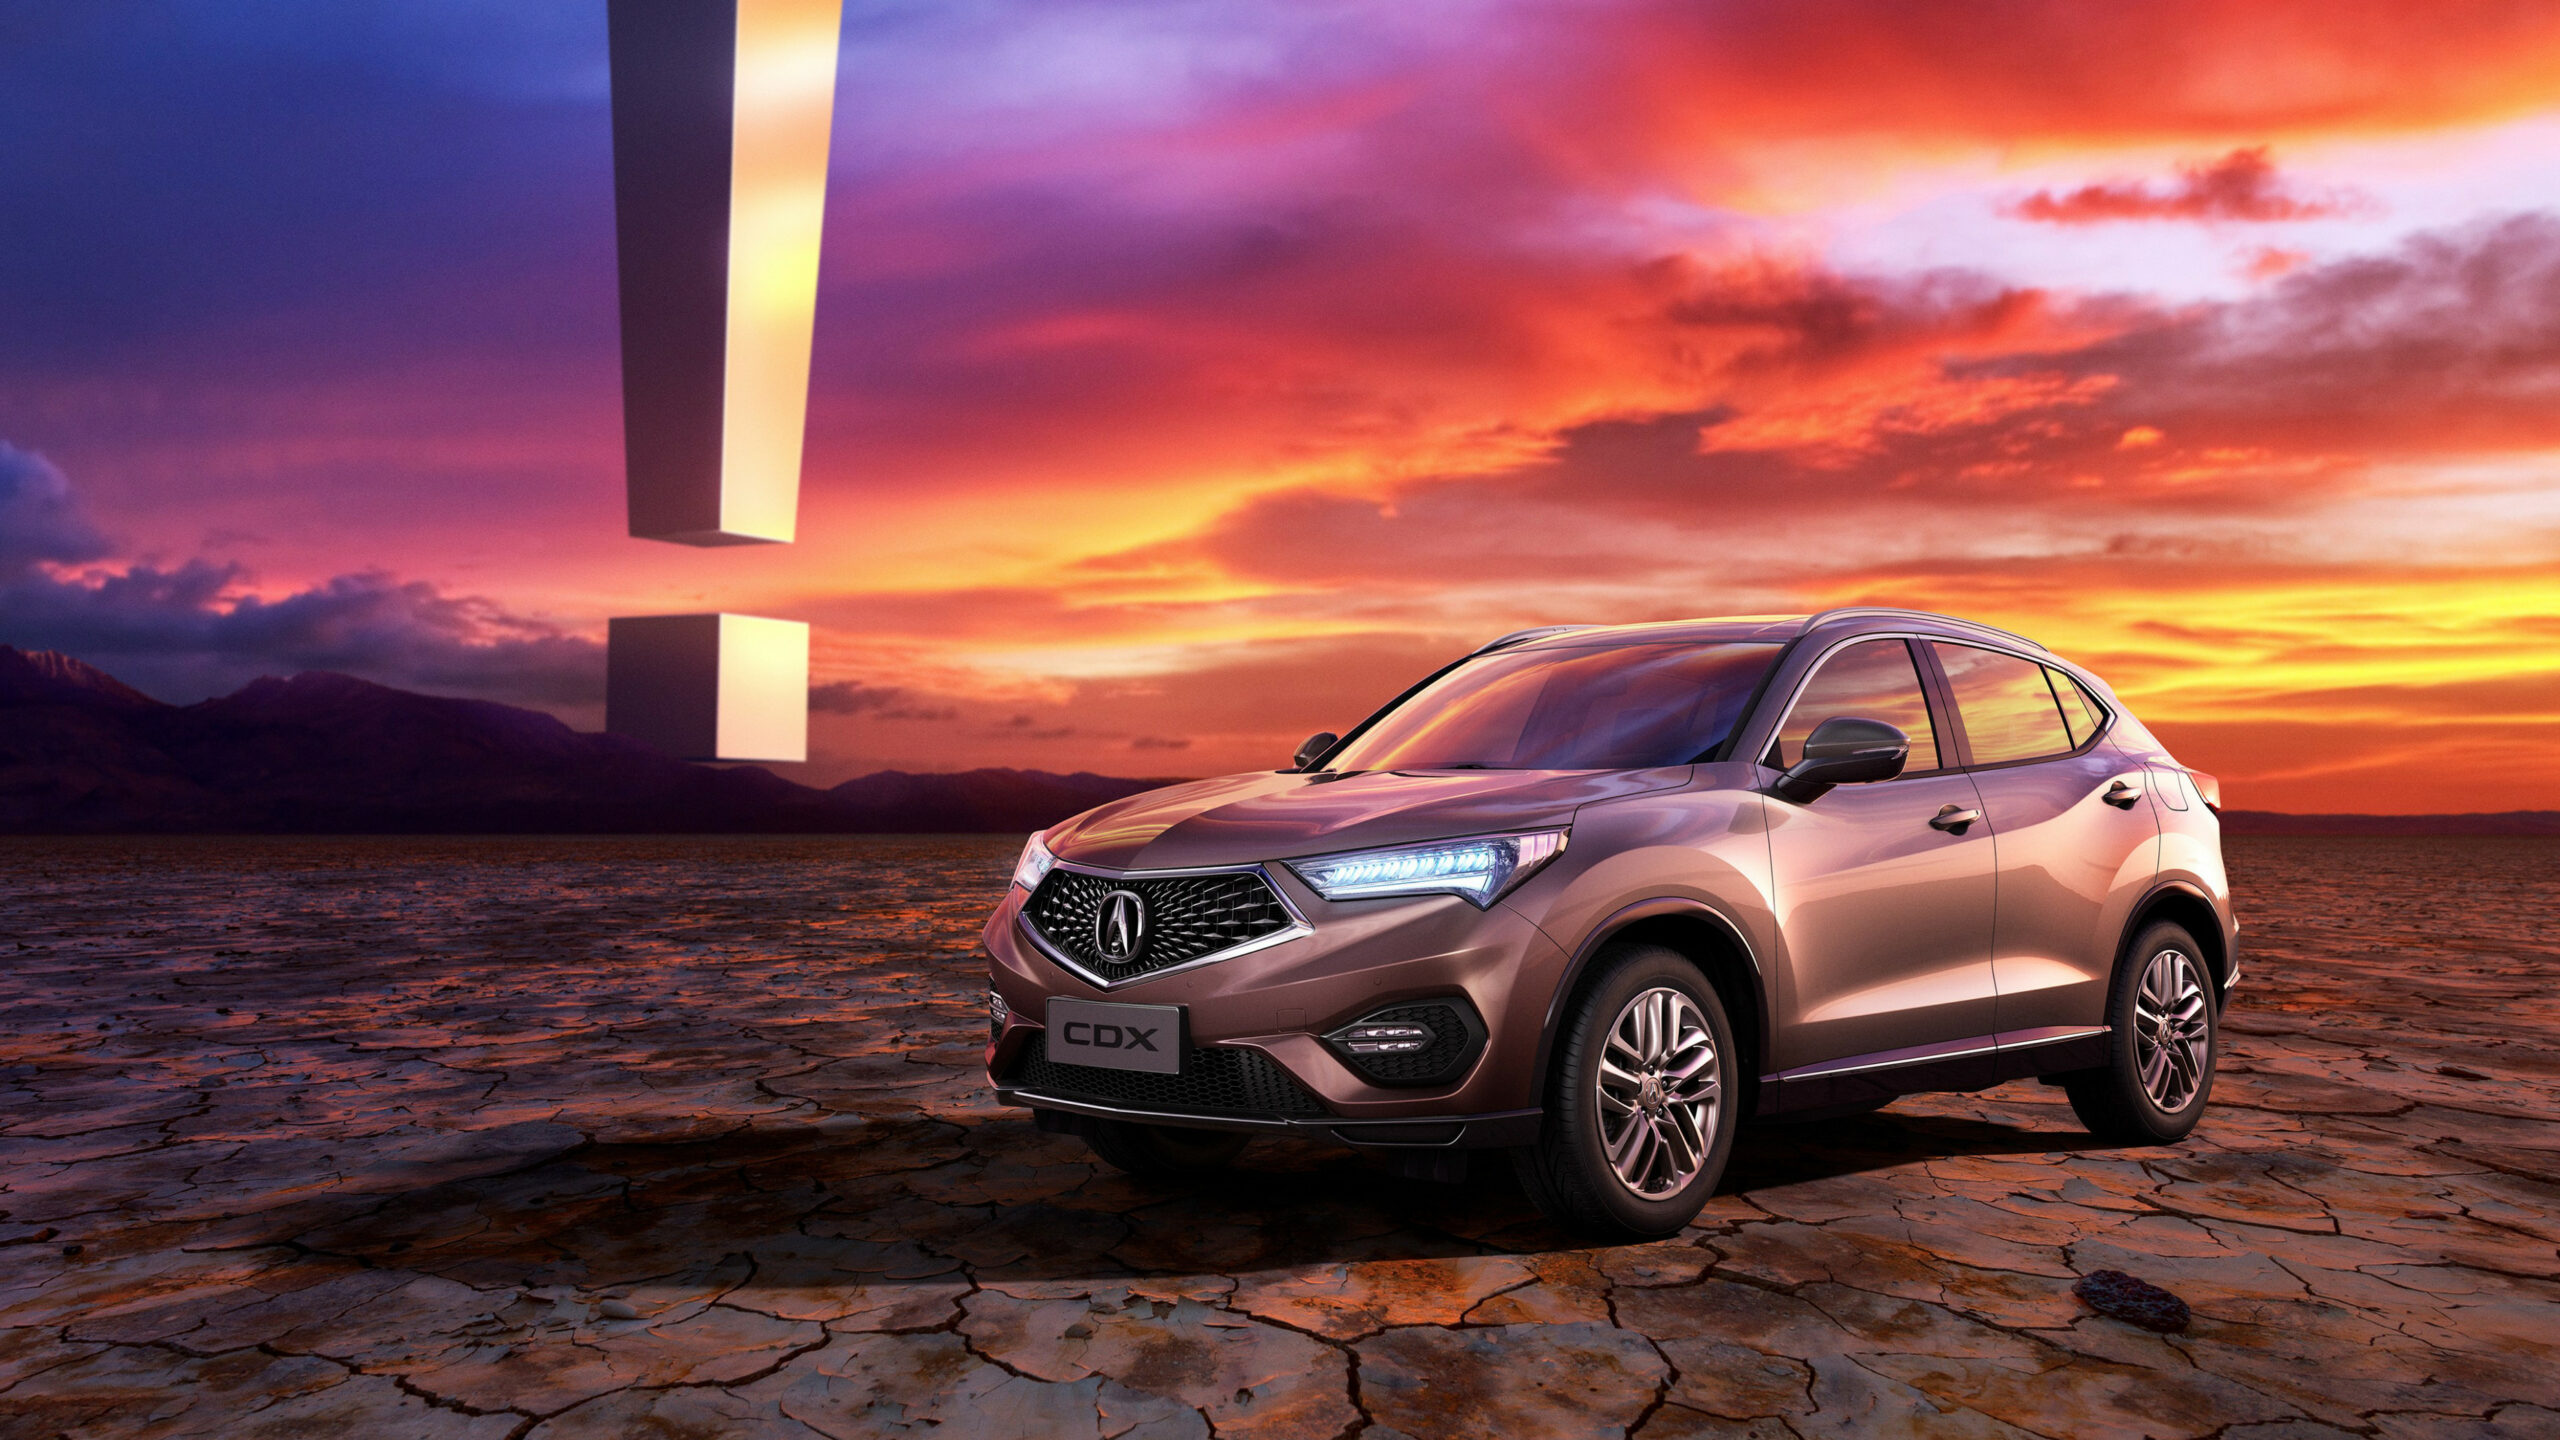 Acura CDX 8 Wallpaper | HD Car Wallpapers | ID #8 - 2020 acura cdx